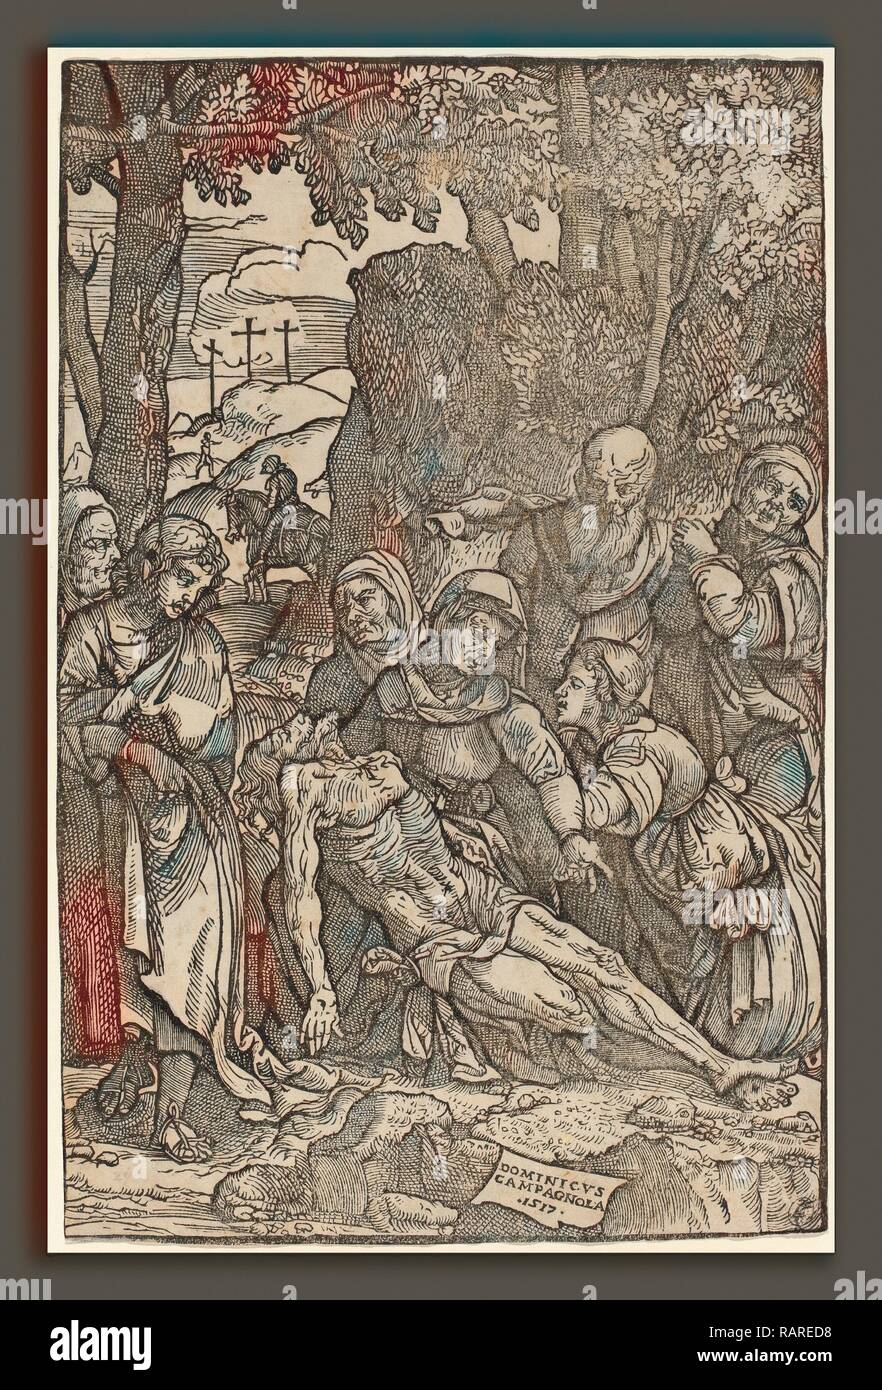 Domenico Campagnola (Italian, before 1500 - 1564), Lamentation of Christ, 1517, woodcut. Reimagined by Gibon. Classic reimagined - Stock Image